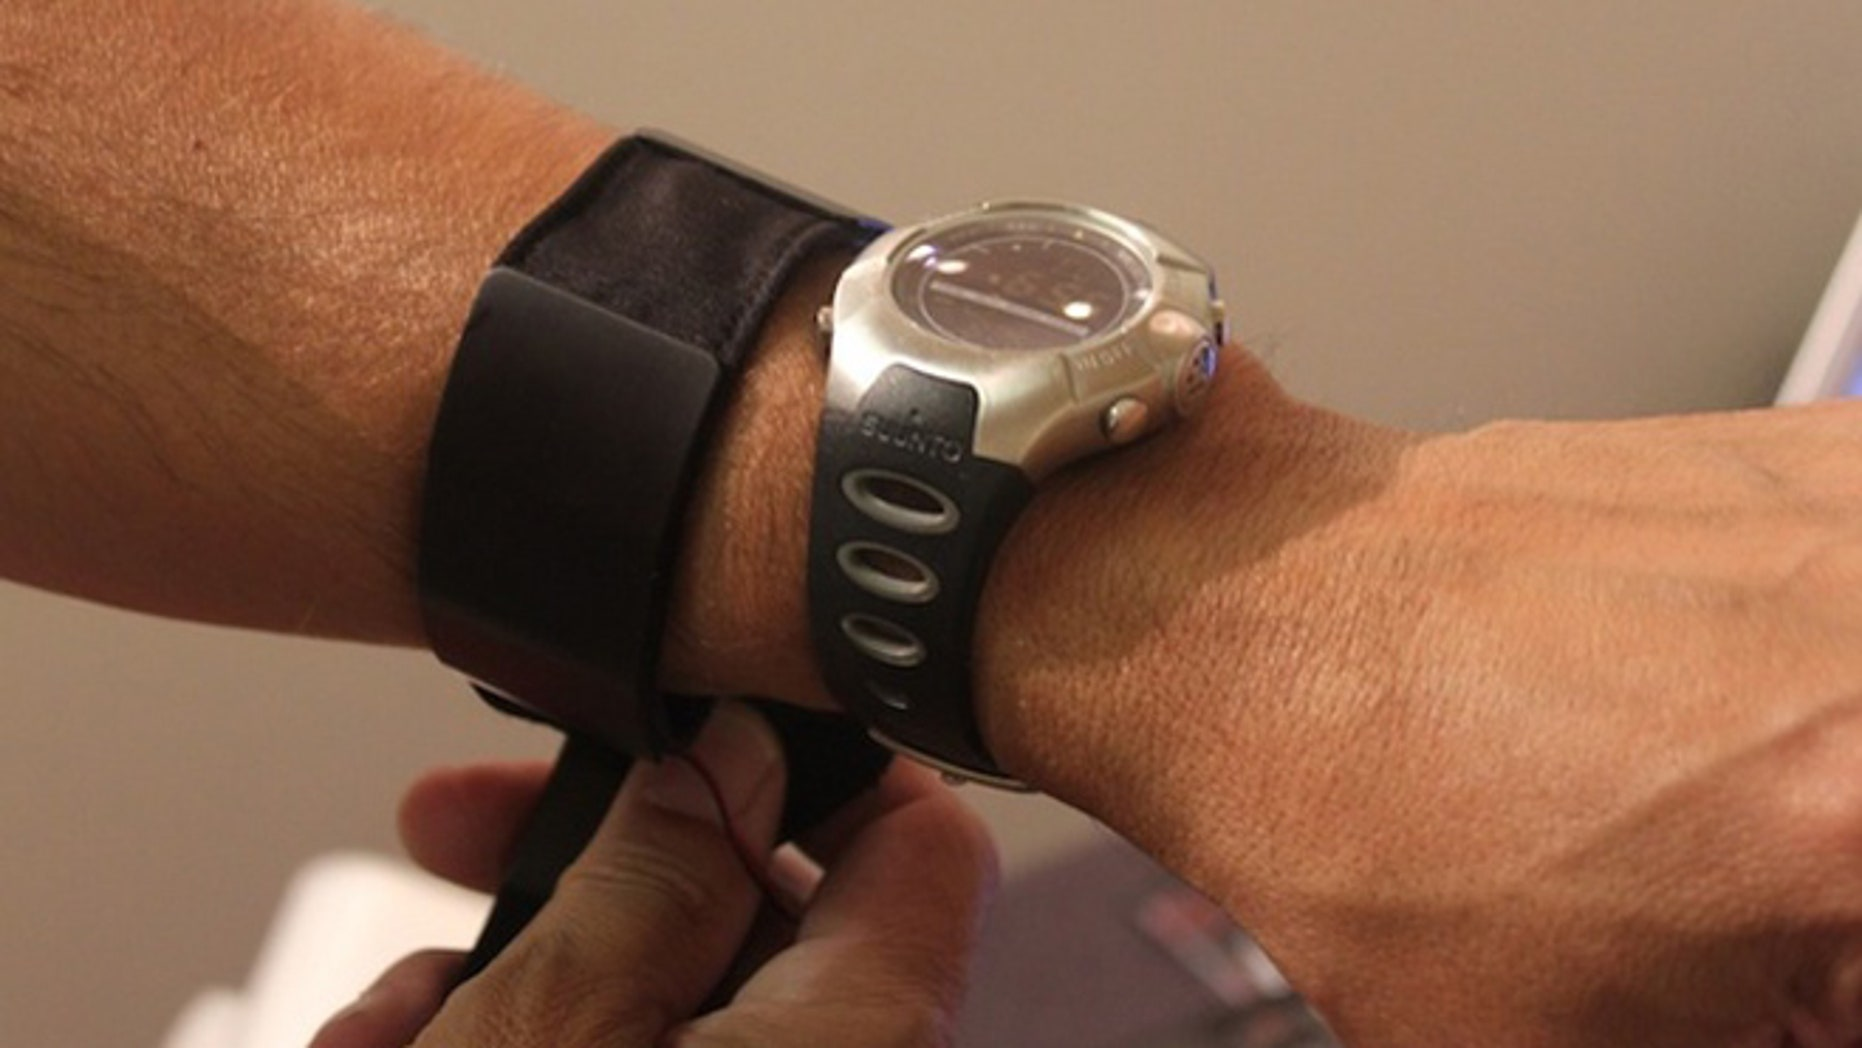 A makeshift armband will one day become a wrist strap that could power this watch.